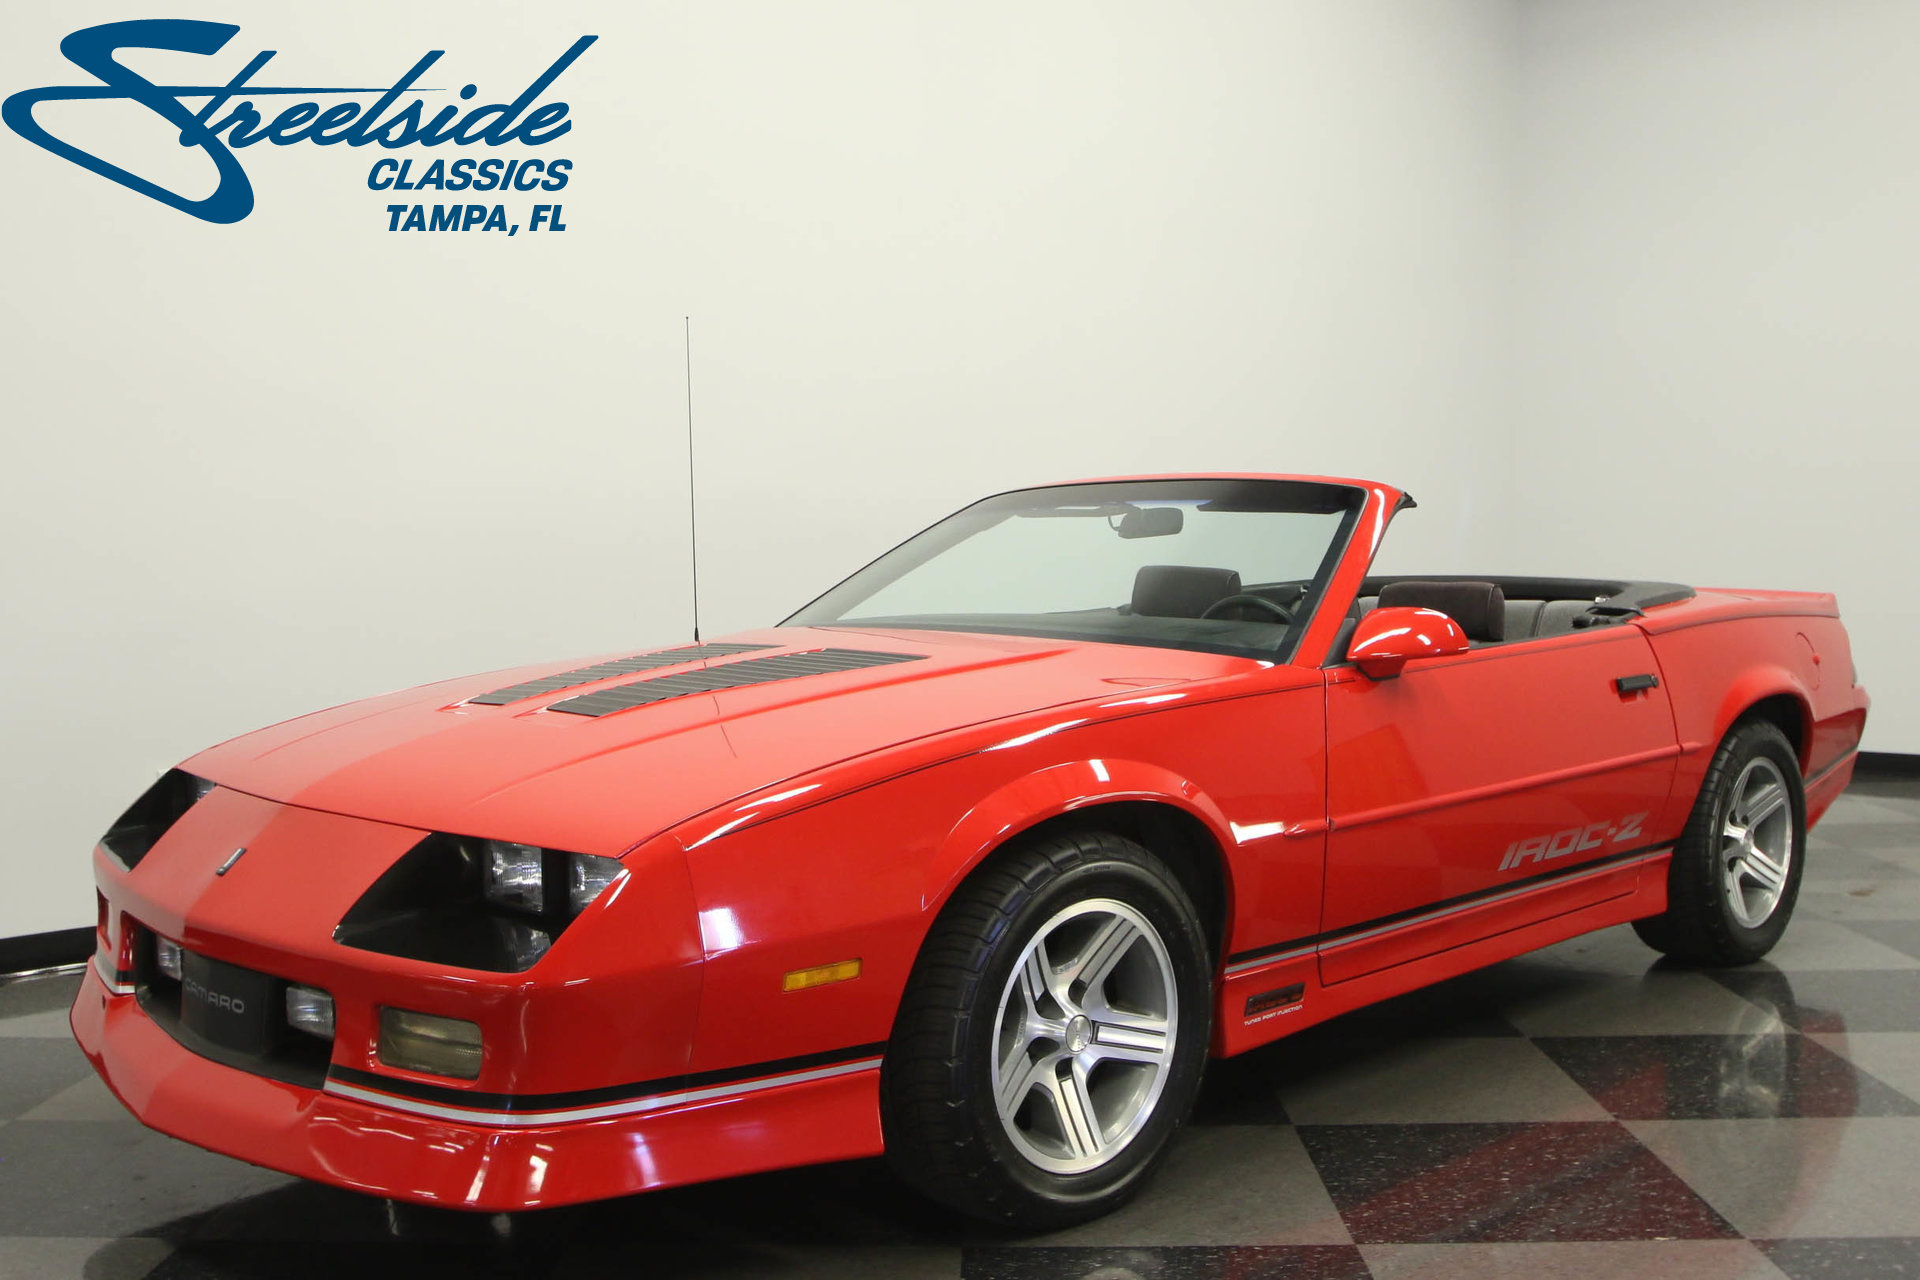 1990 chevrolet camaro iroc z 28 convertible for sale 50851 mcg. Black Bedroom Furniture Sets. Home Design Ideas